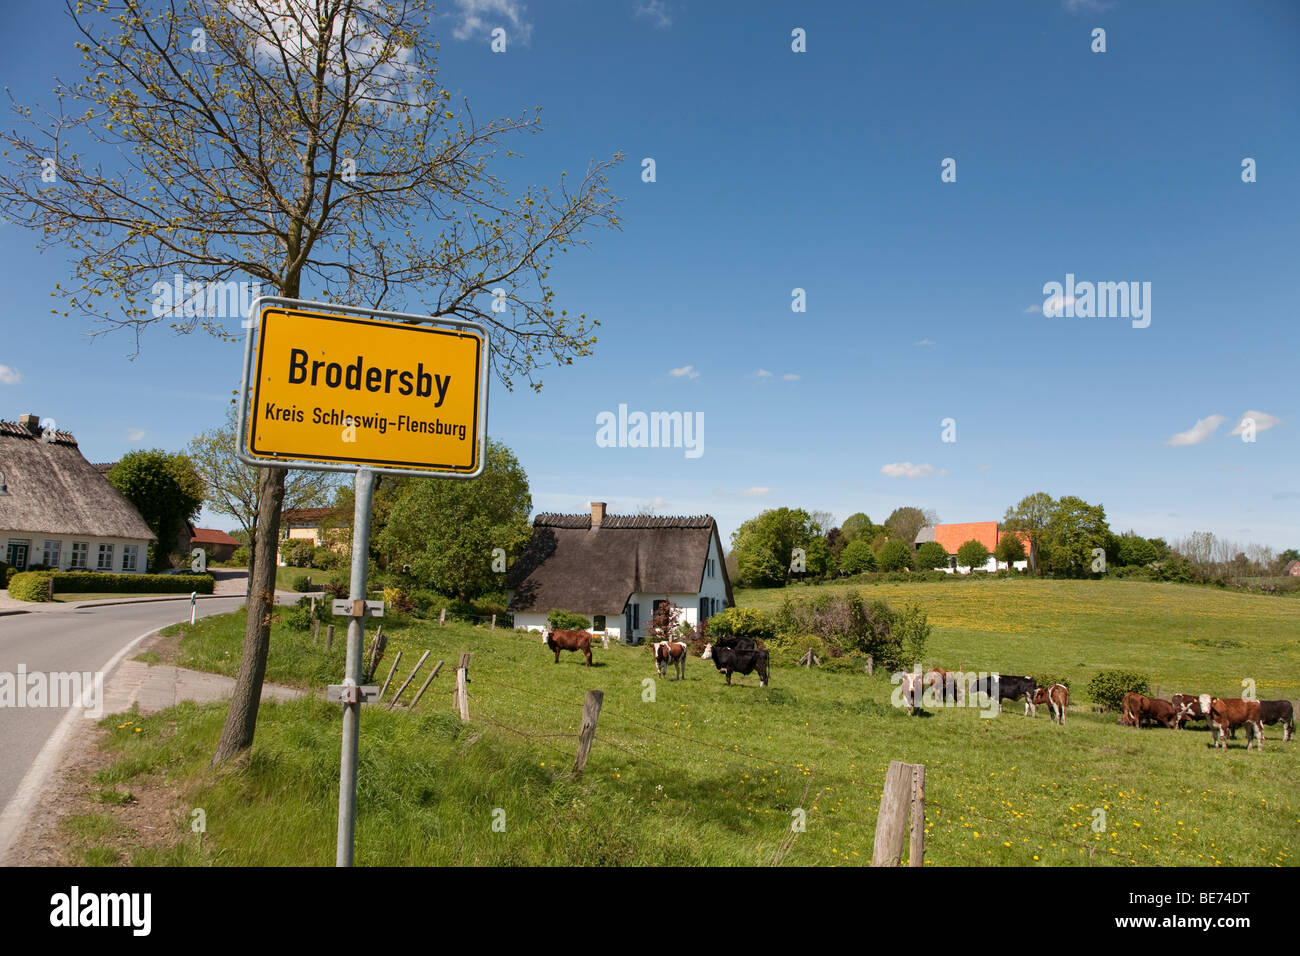 Place-name sign, Brodersby municipality, Angeln region, eastern down, Schleswig-Holstein, Germany, Europe - Stock Image